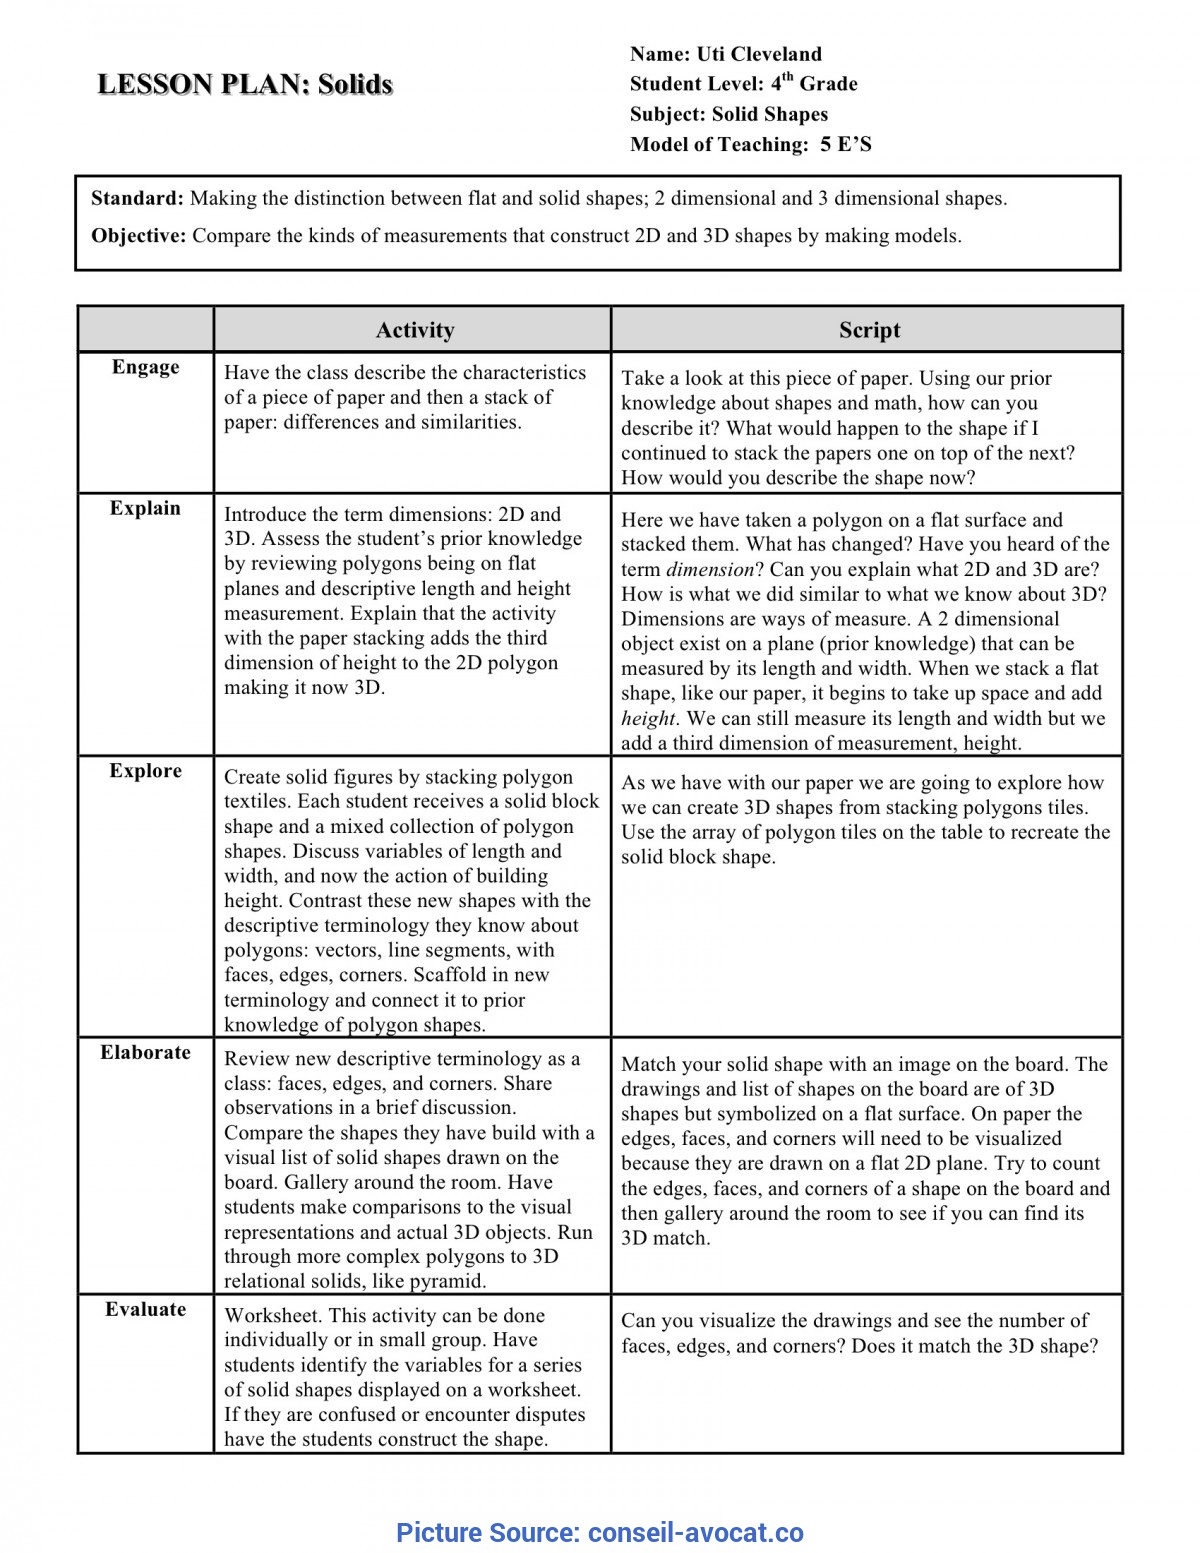 Top Mathematics Lesson Plan Template Free Format Word Coupon Cash Rent Rec